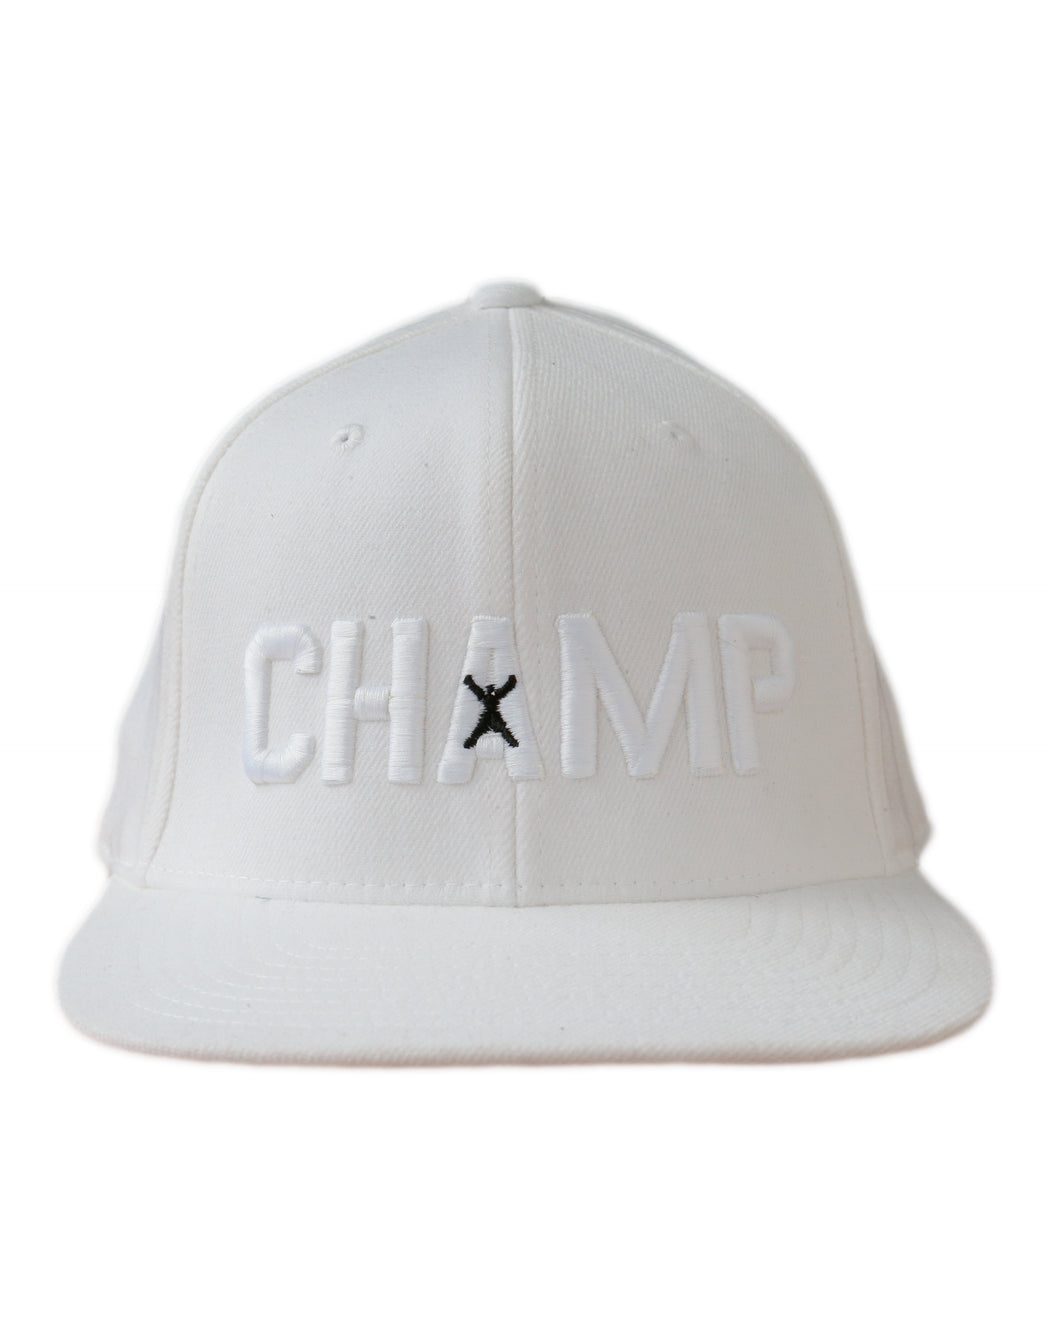 Boxer Men's Flexfit One Ten White Champ Baseball Cap